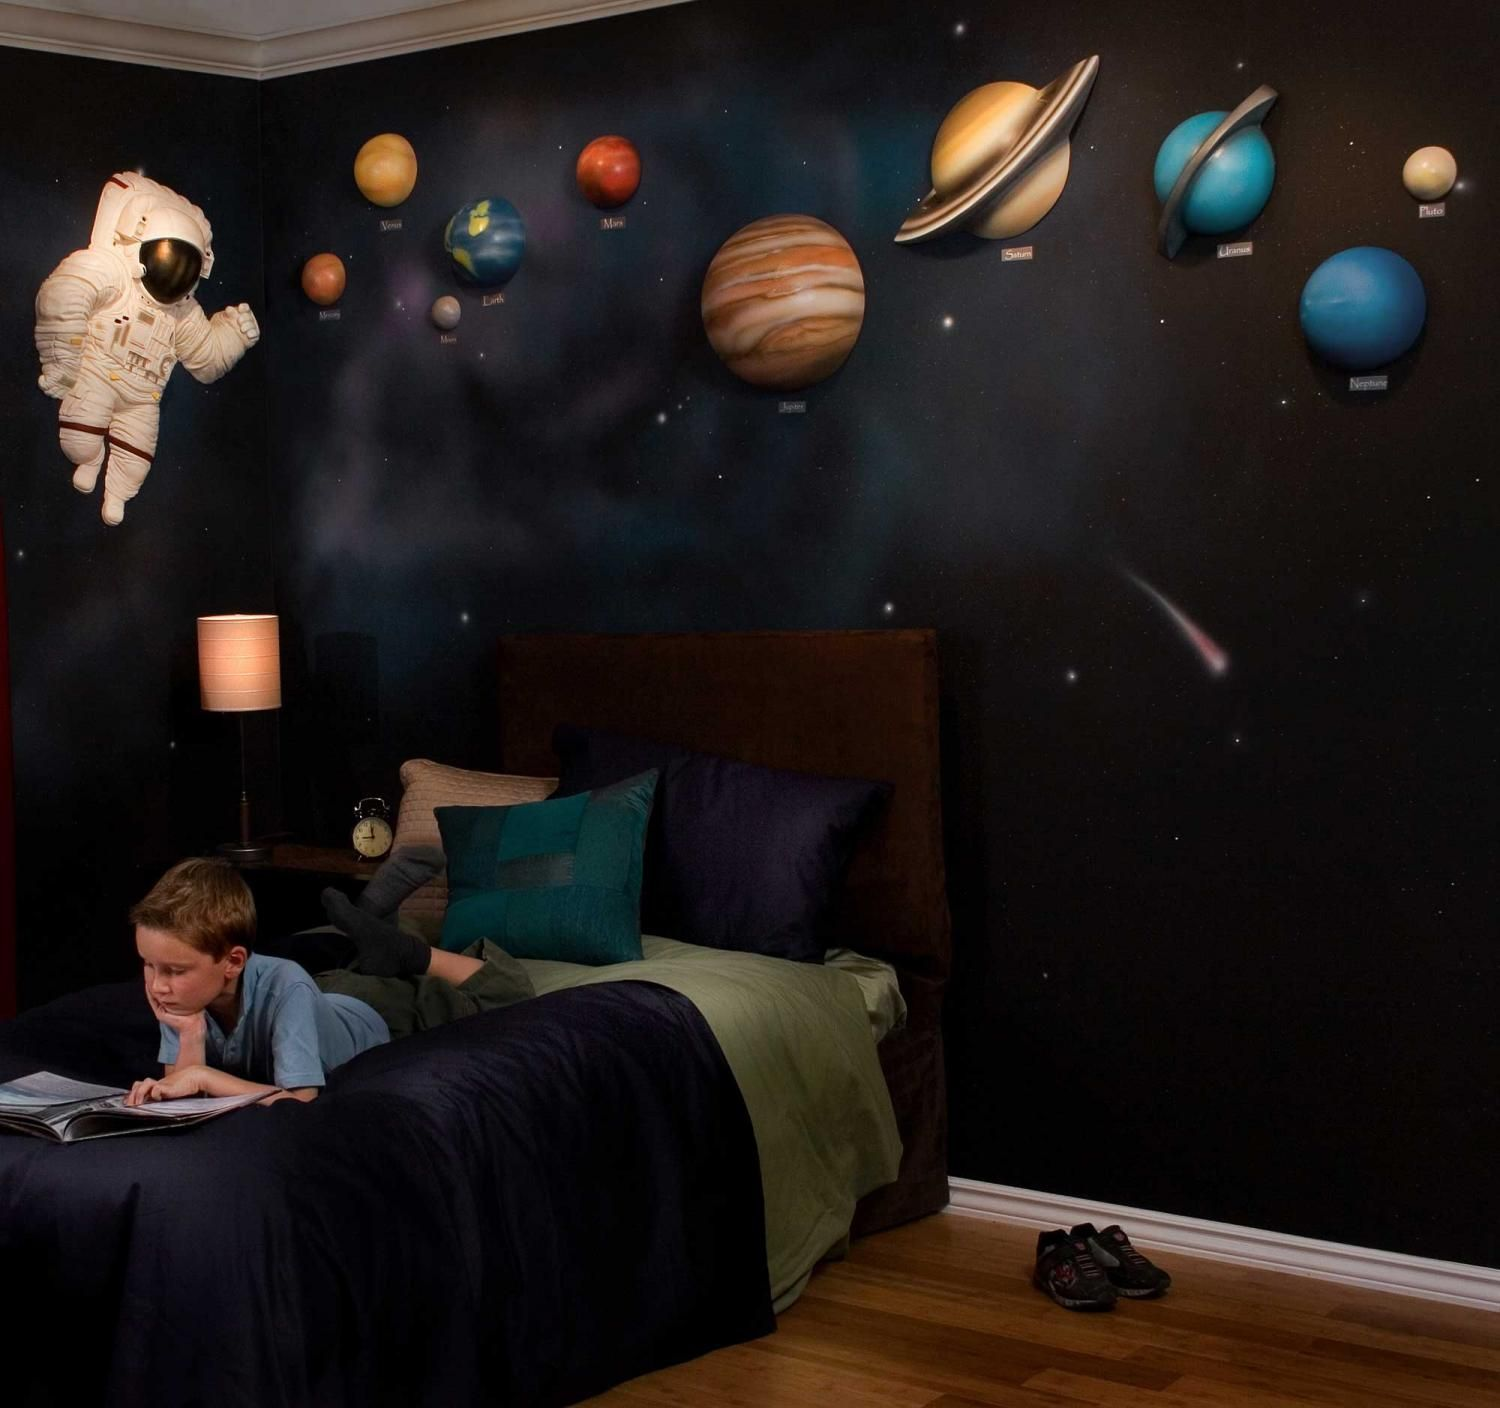 Solar system with space astronaut 3d wall art decor by for Room decor 3